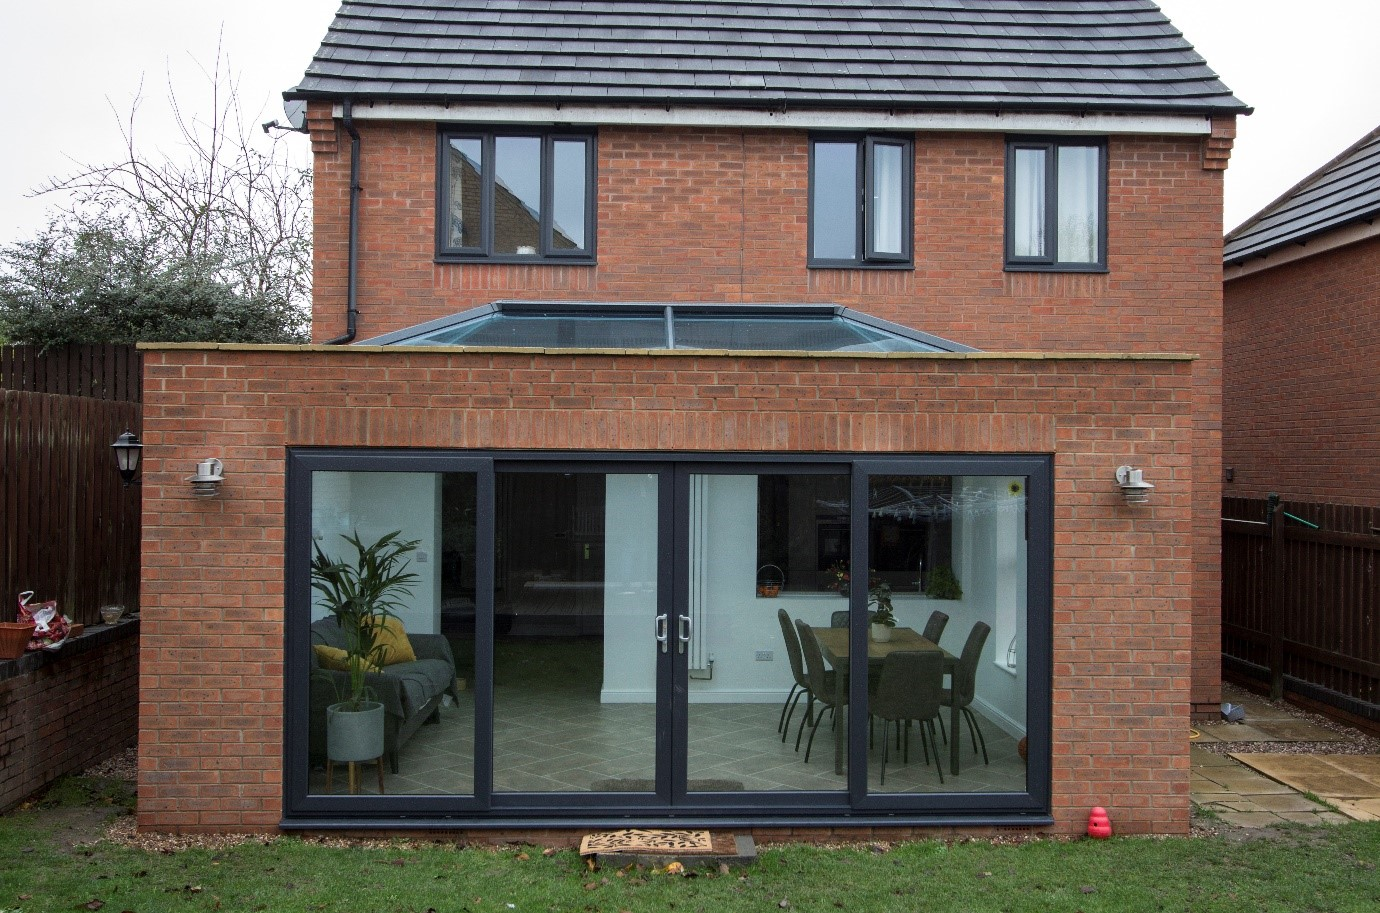 Swallownest orangery and sliding patio door